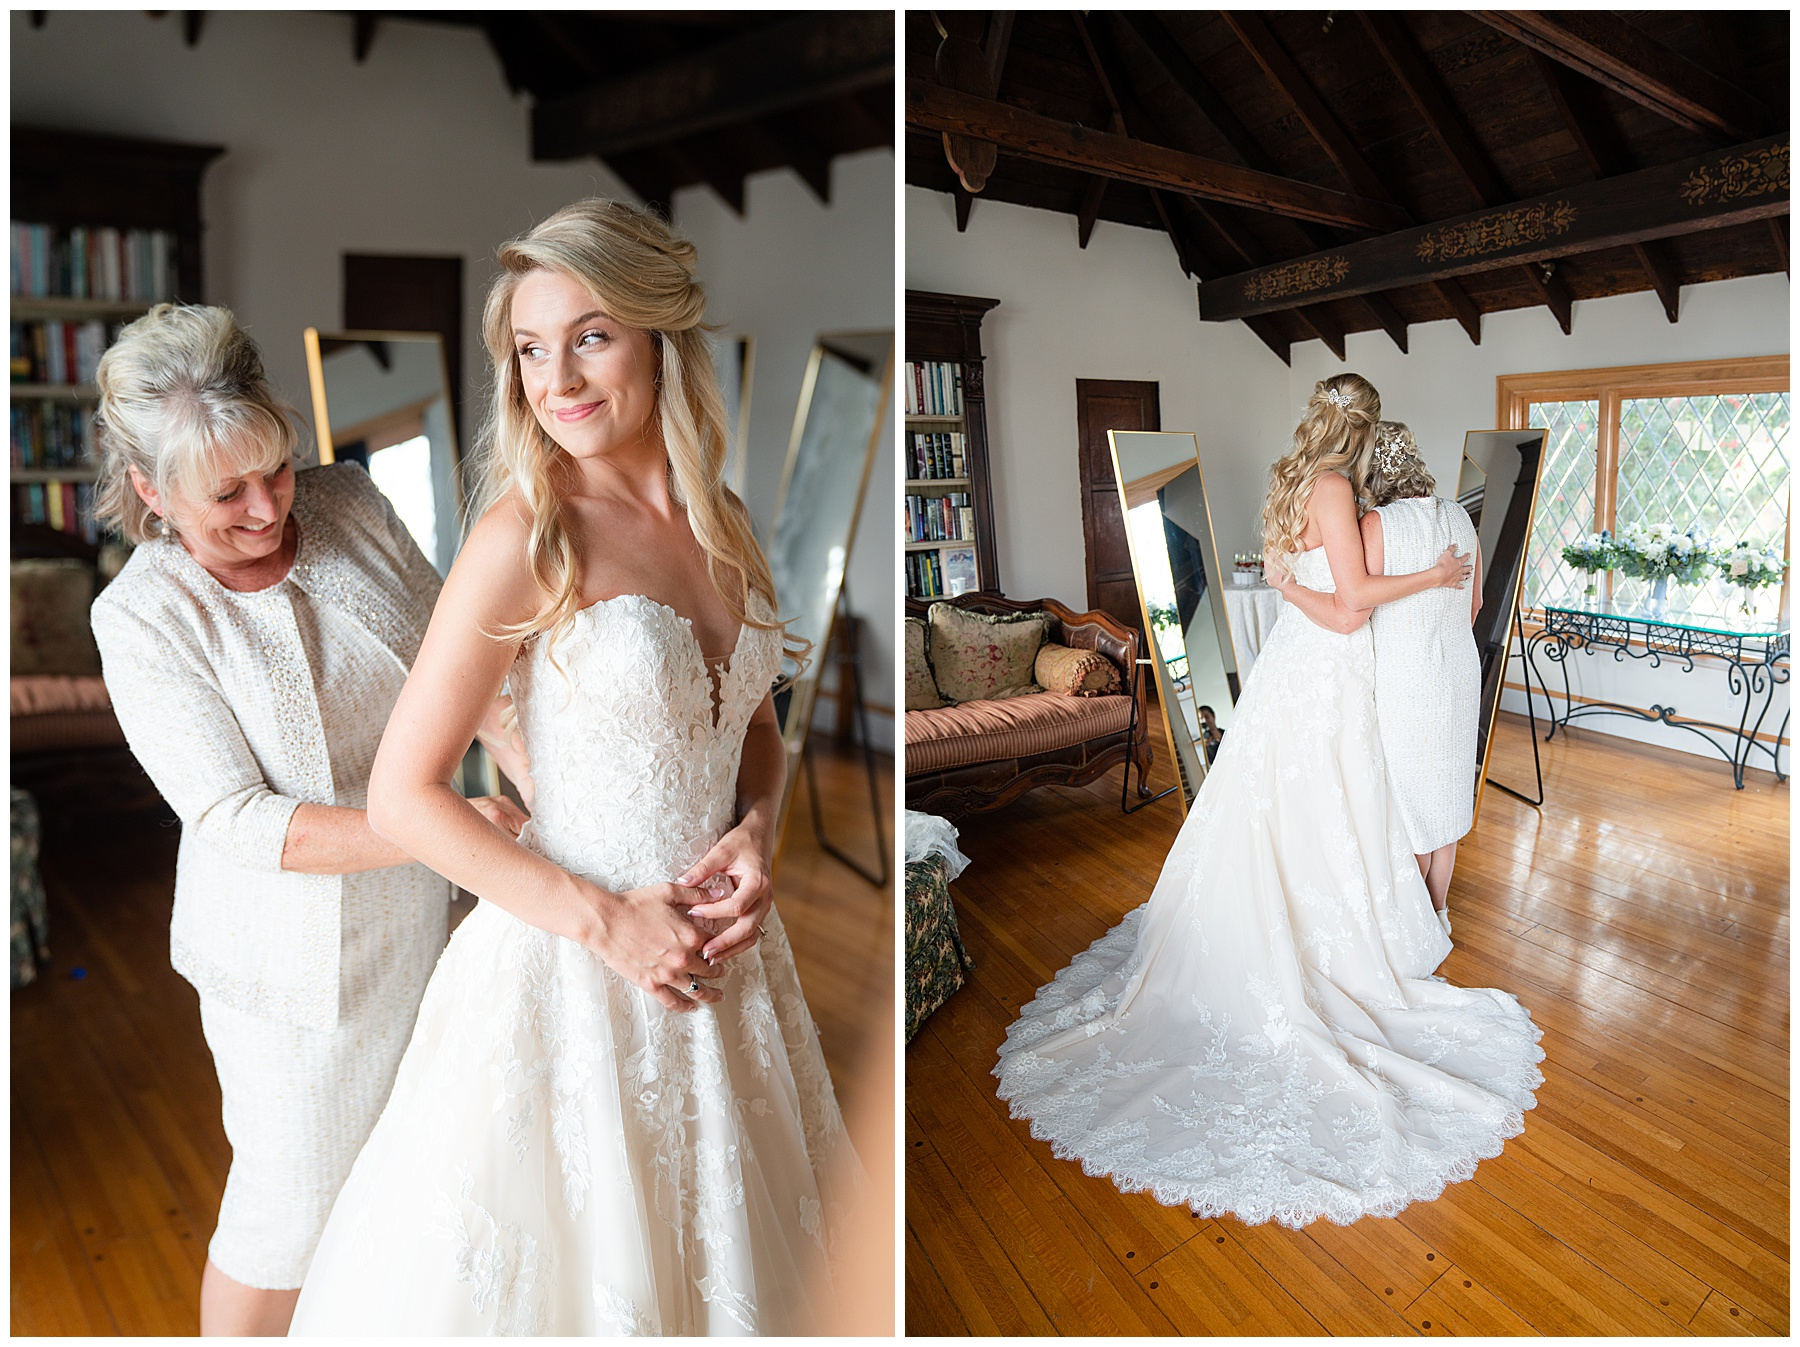 mother of the bride buttoning brides dress